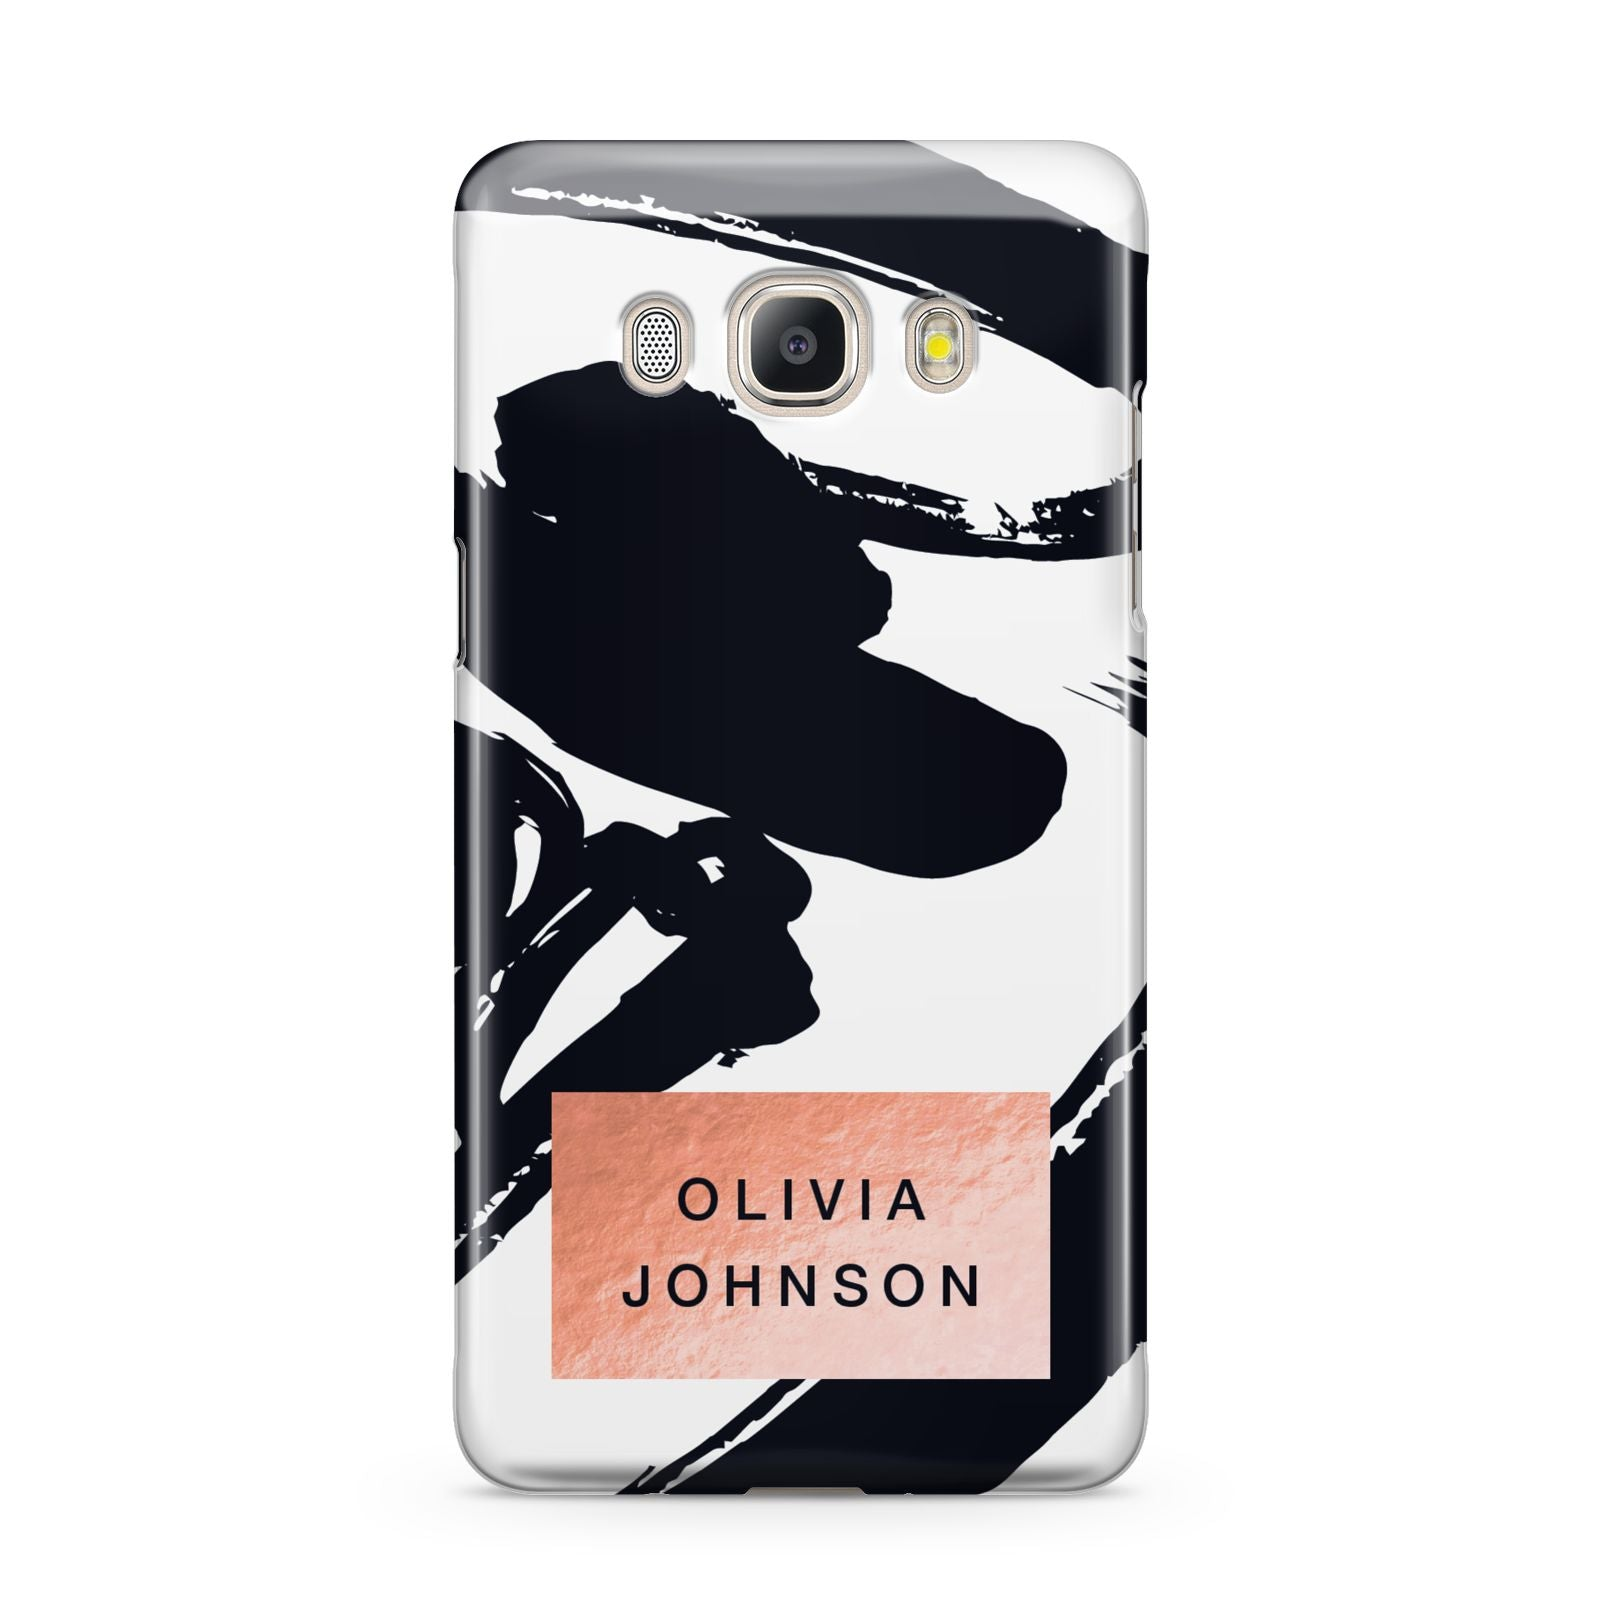 Personalised Black Brushes With Name Samsung Galaxy J5 2016 Case